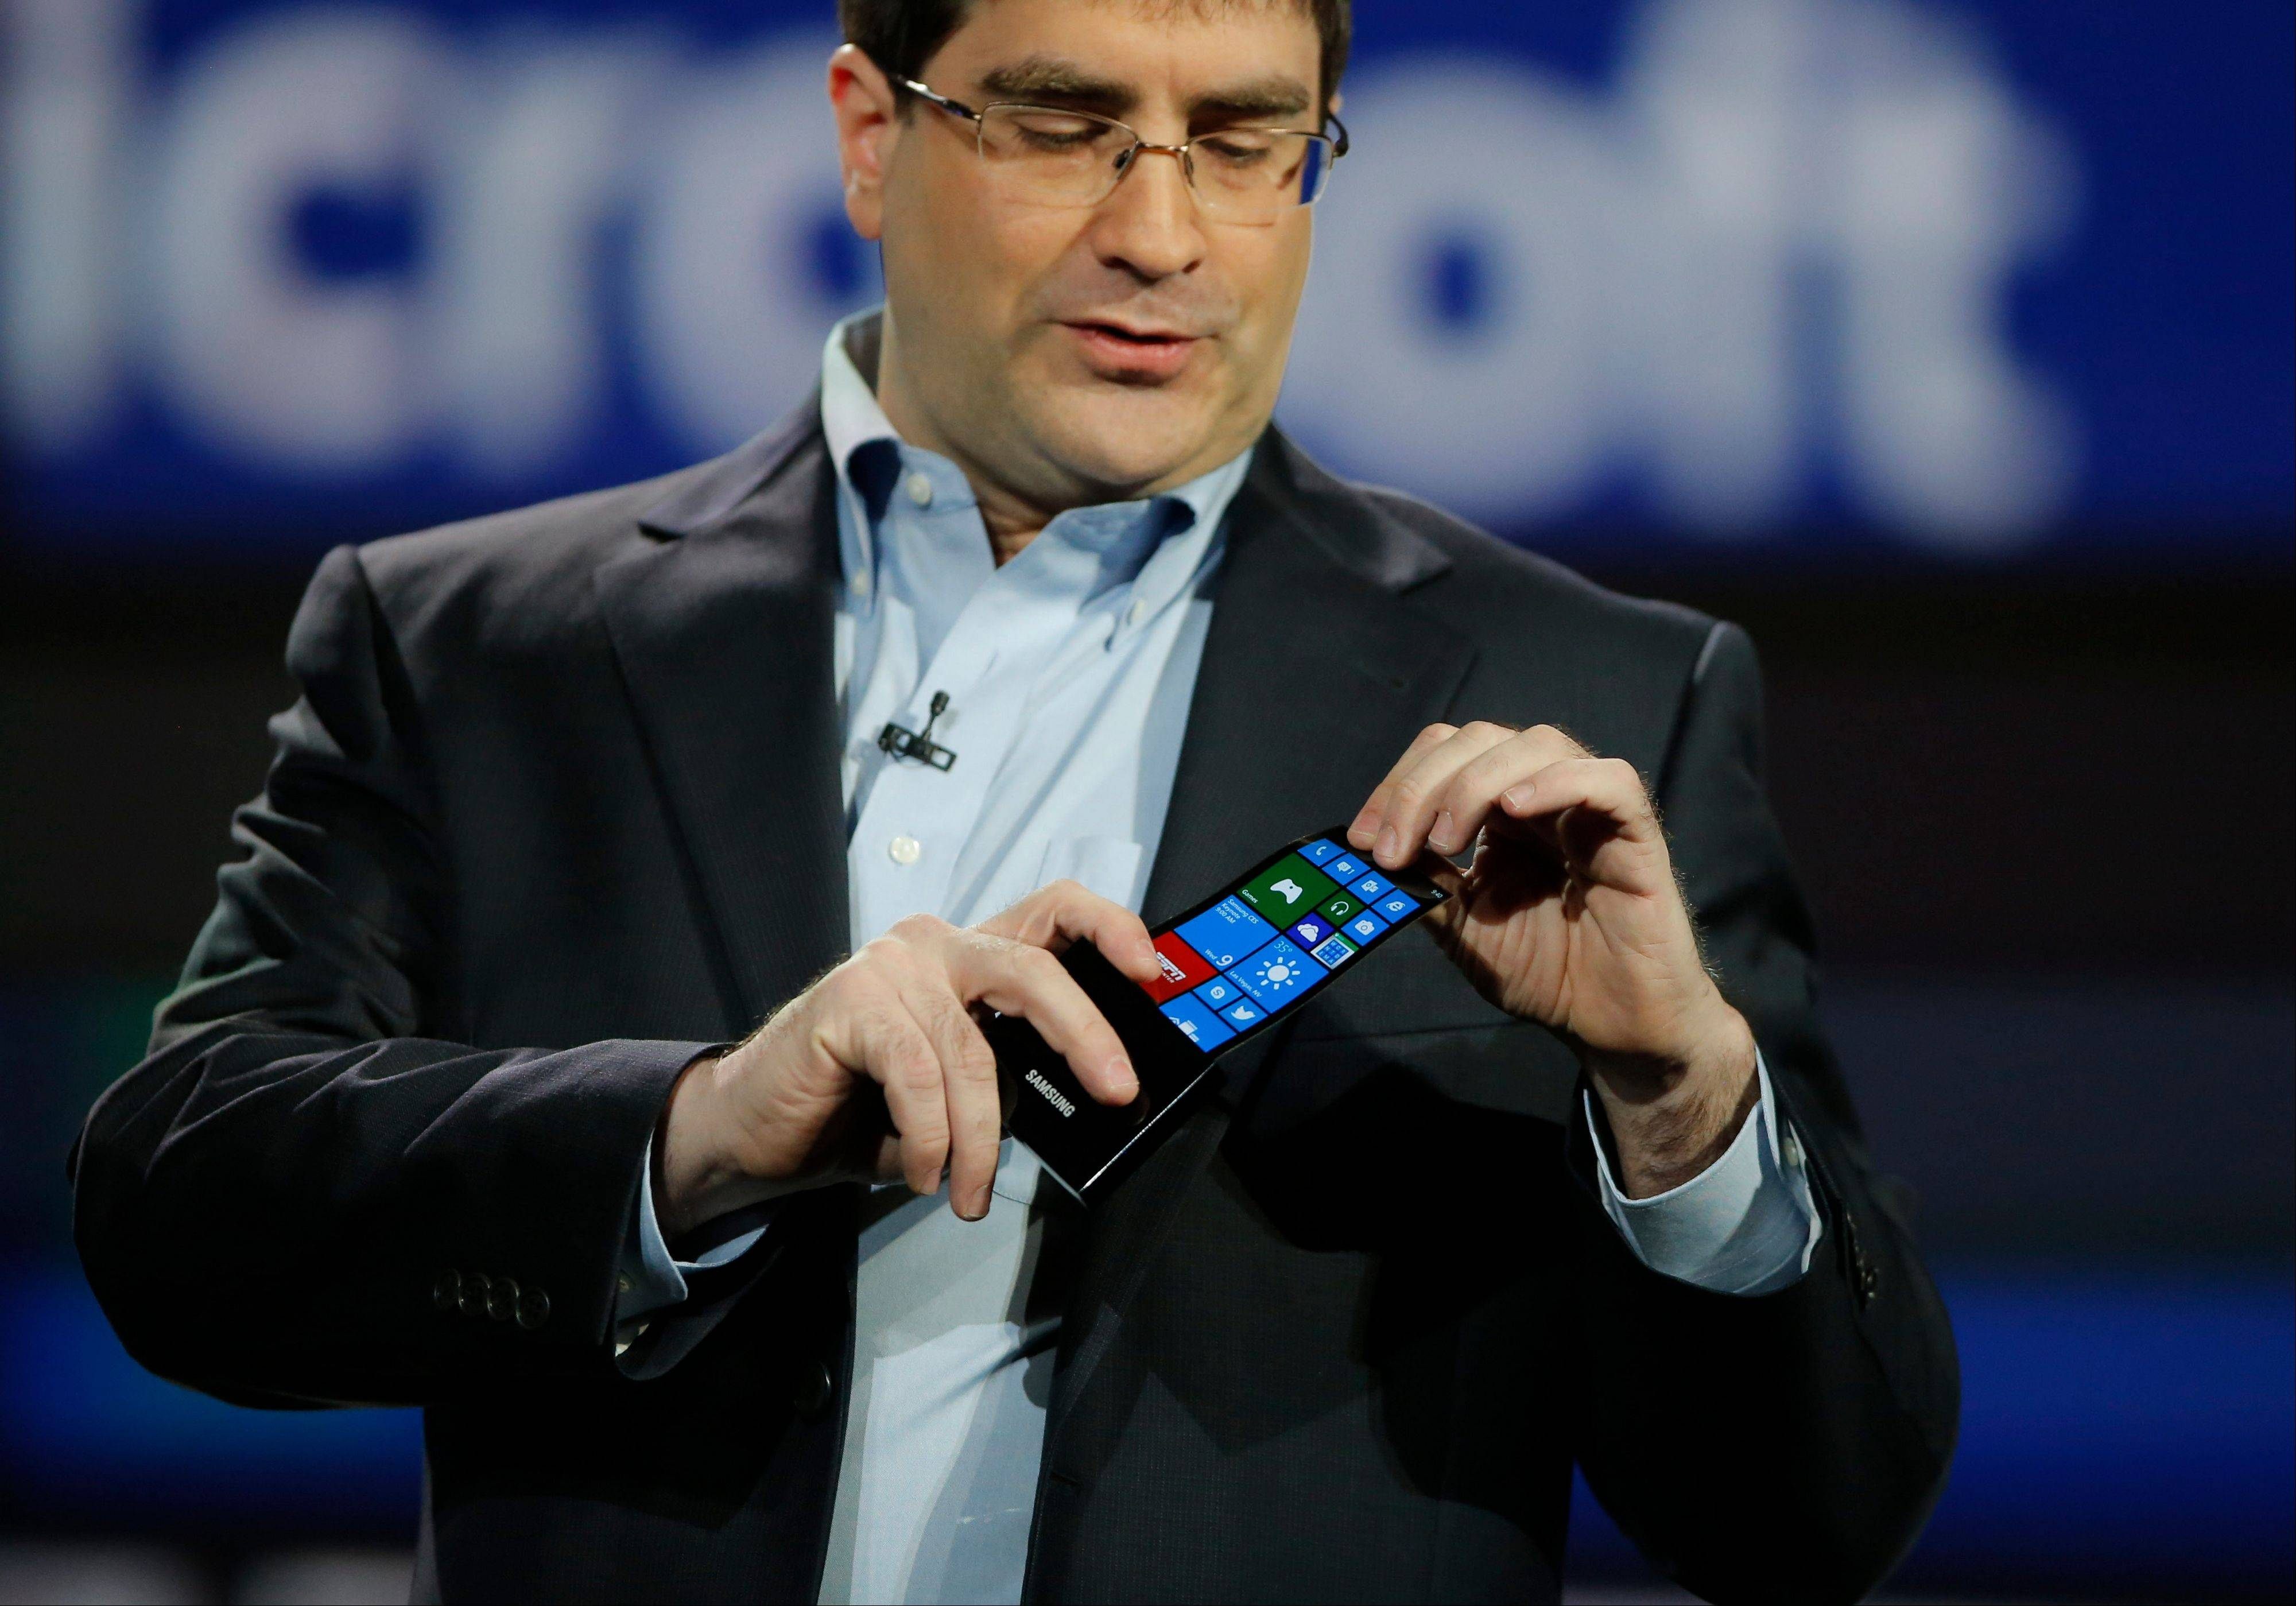 Eric Rudder, chief technical strategy officer of Microsoft, holds a prototype Windows smartphone with a flexible OLED display during Samsung's keynote address at the International Consumer Electronics Show in Las Vegas Wednesday.